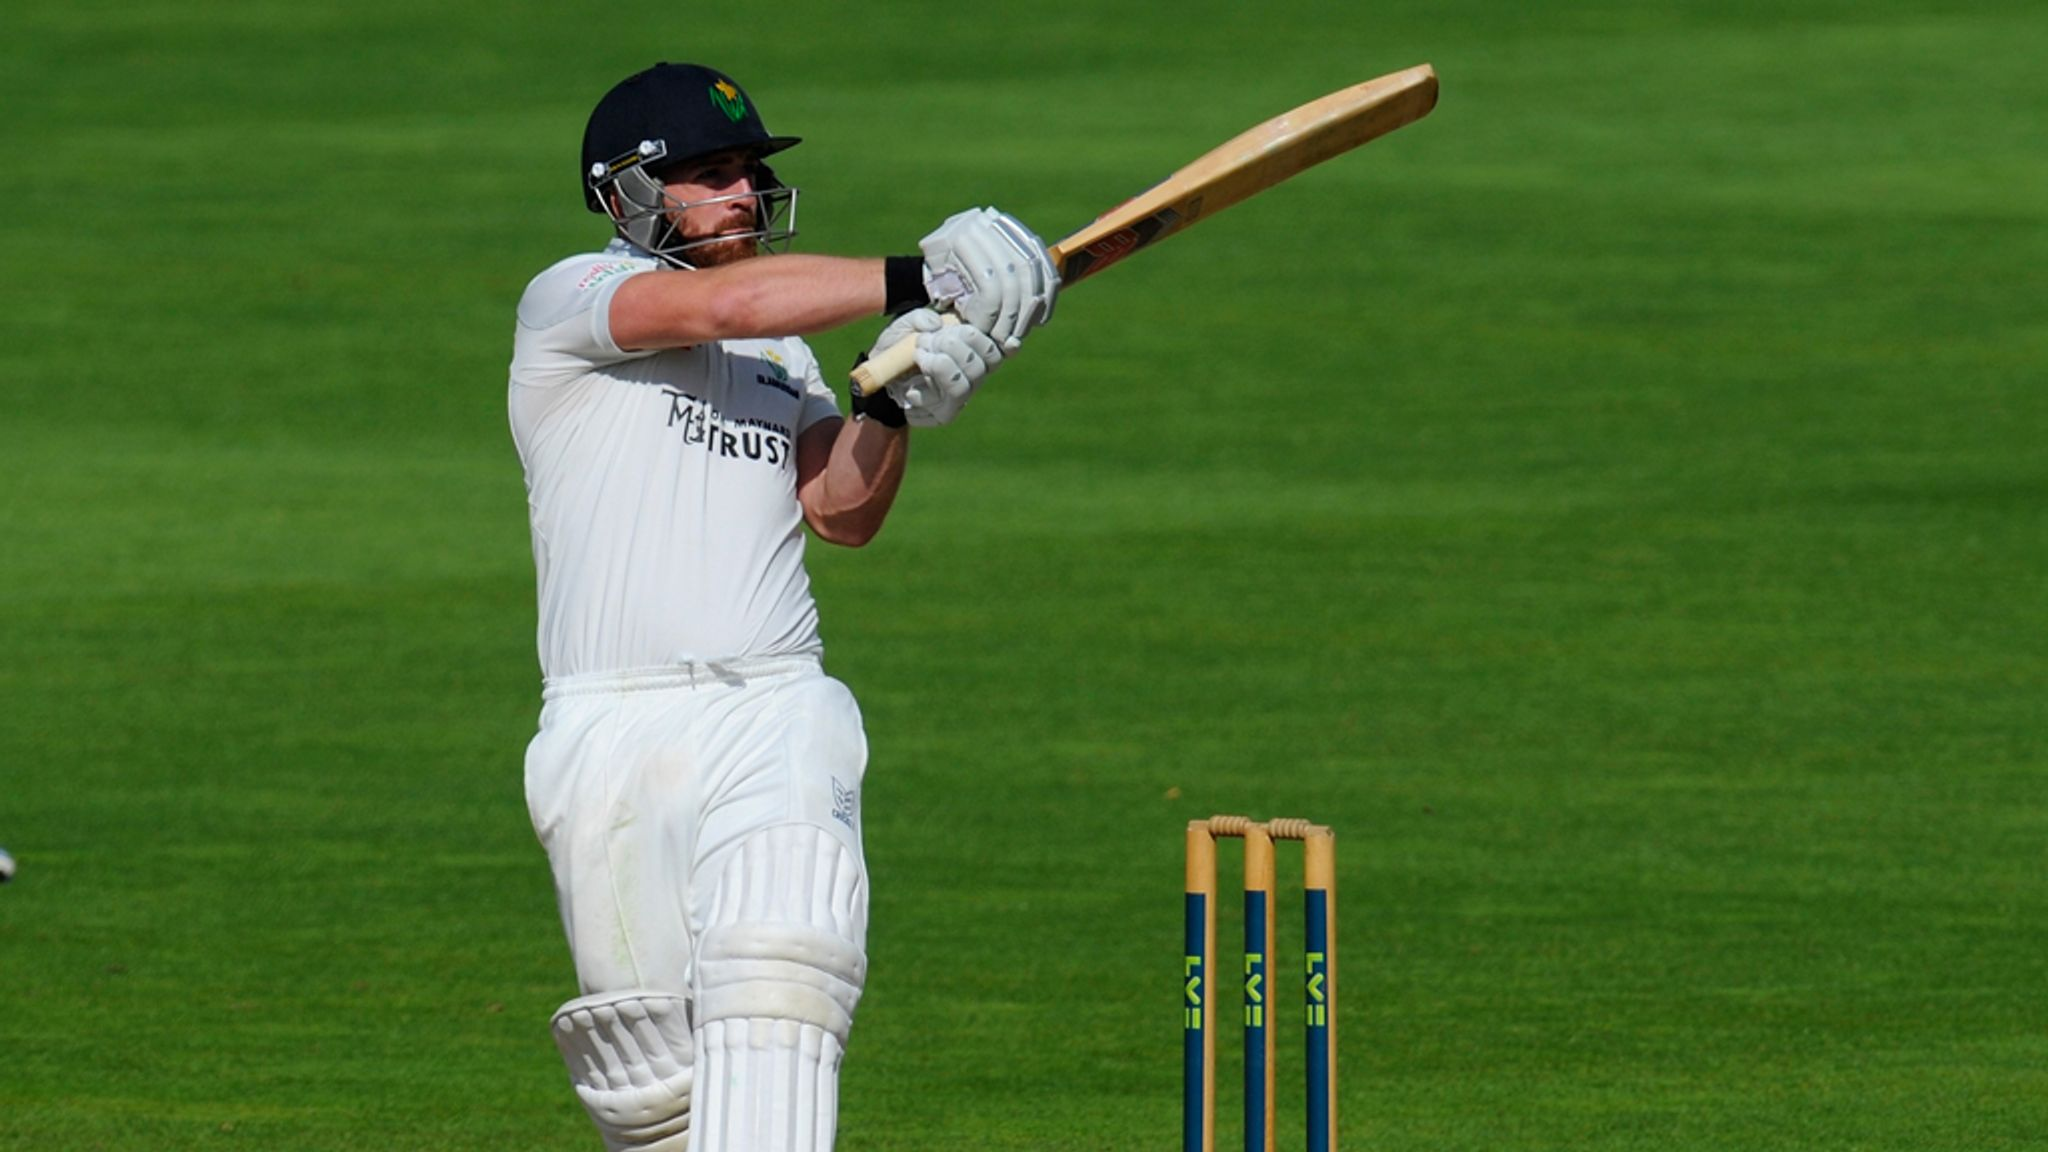 County Championship Division Two: Who will gain promotion